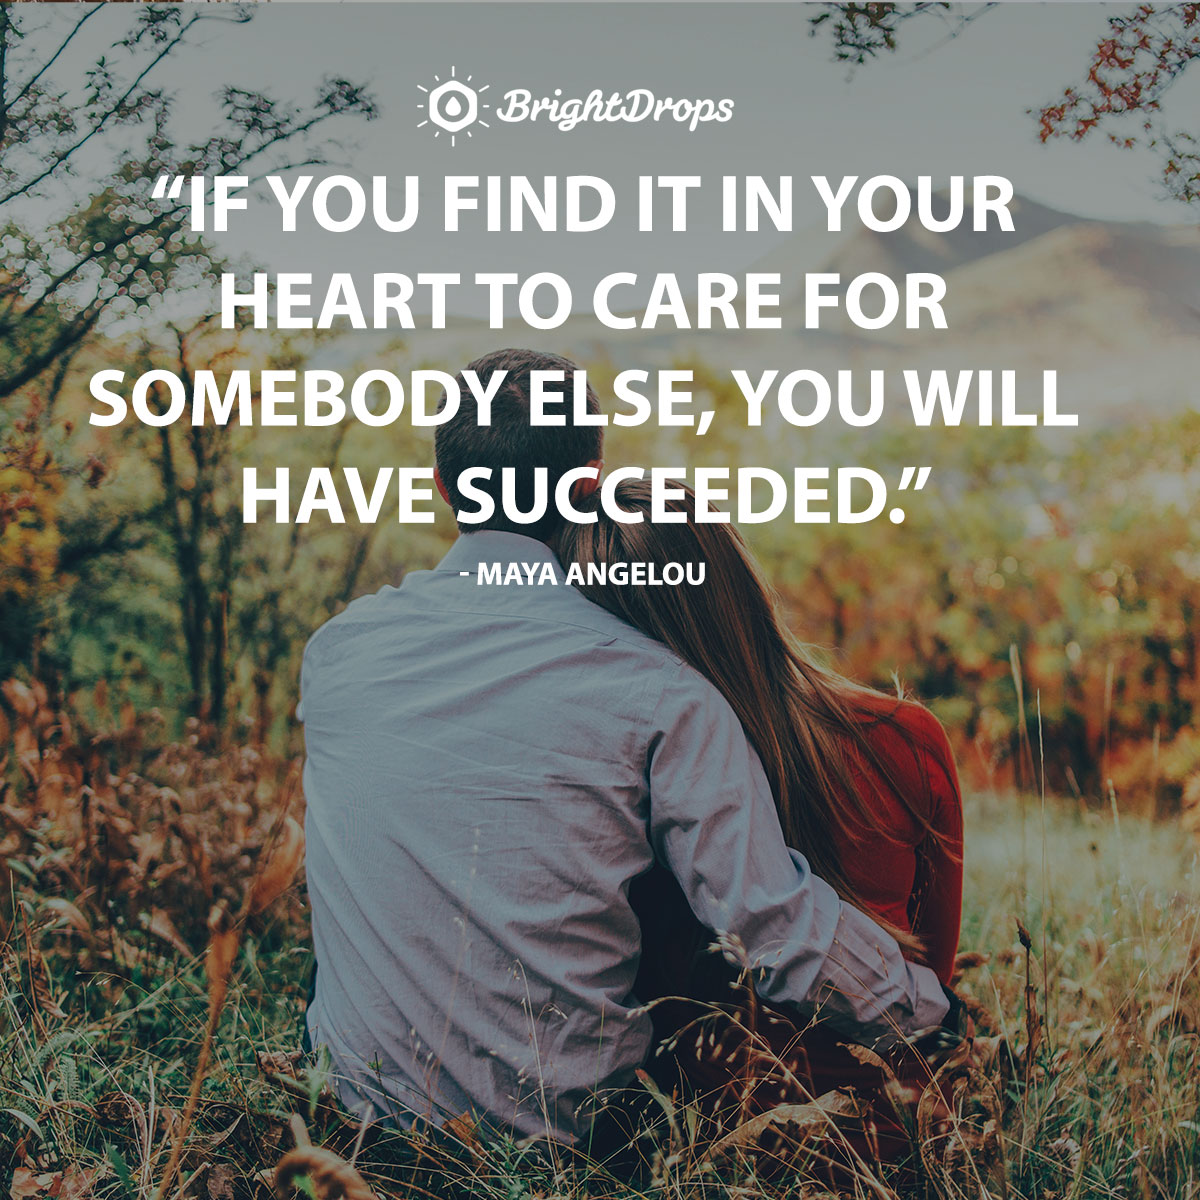 If you find it in your heart to care for somebody else, you will have succeeded. - Maya Angelou